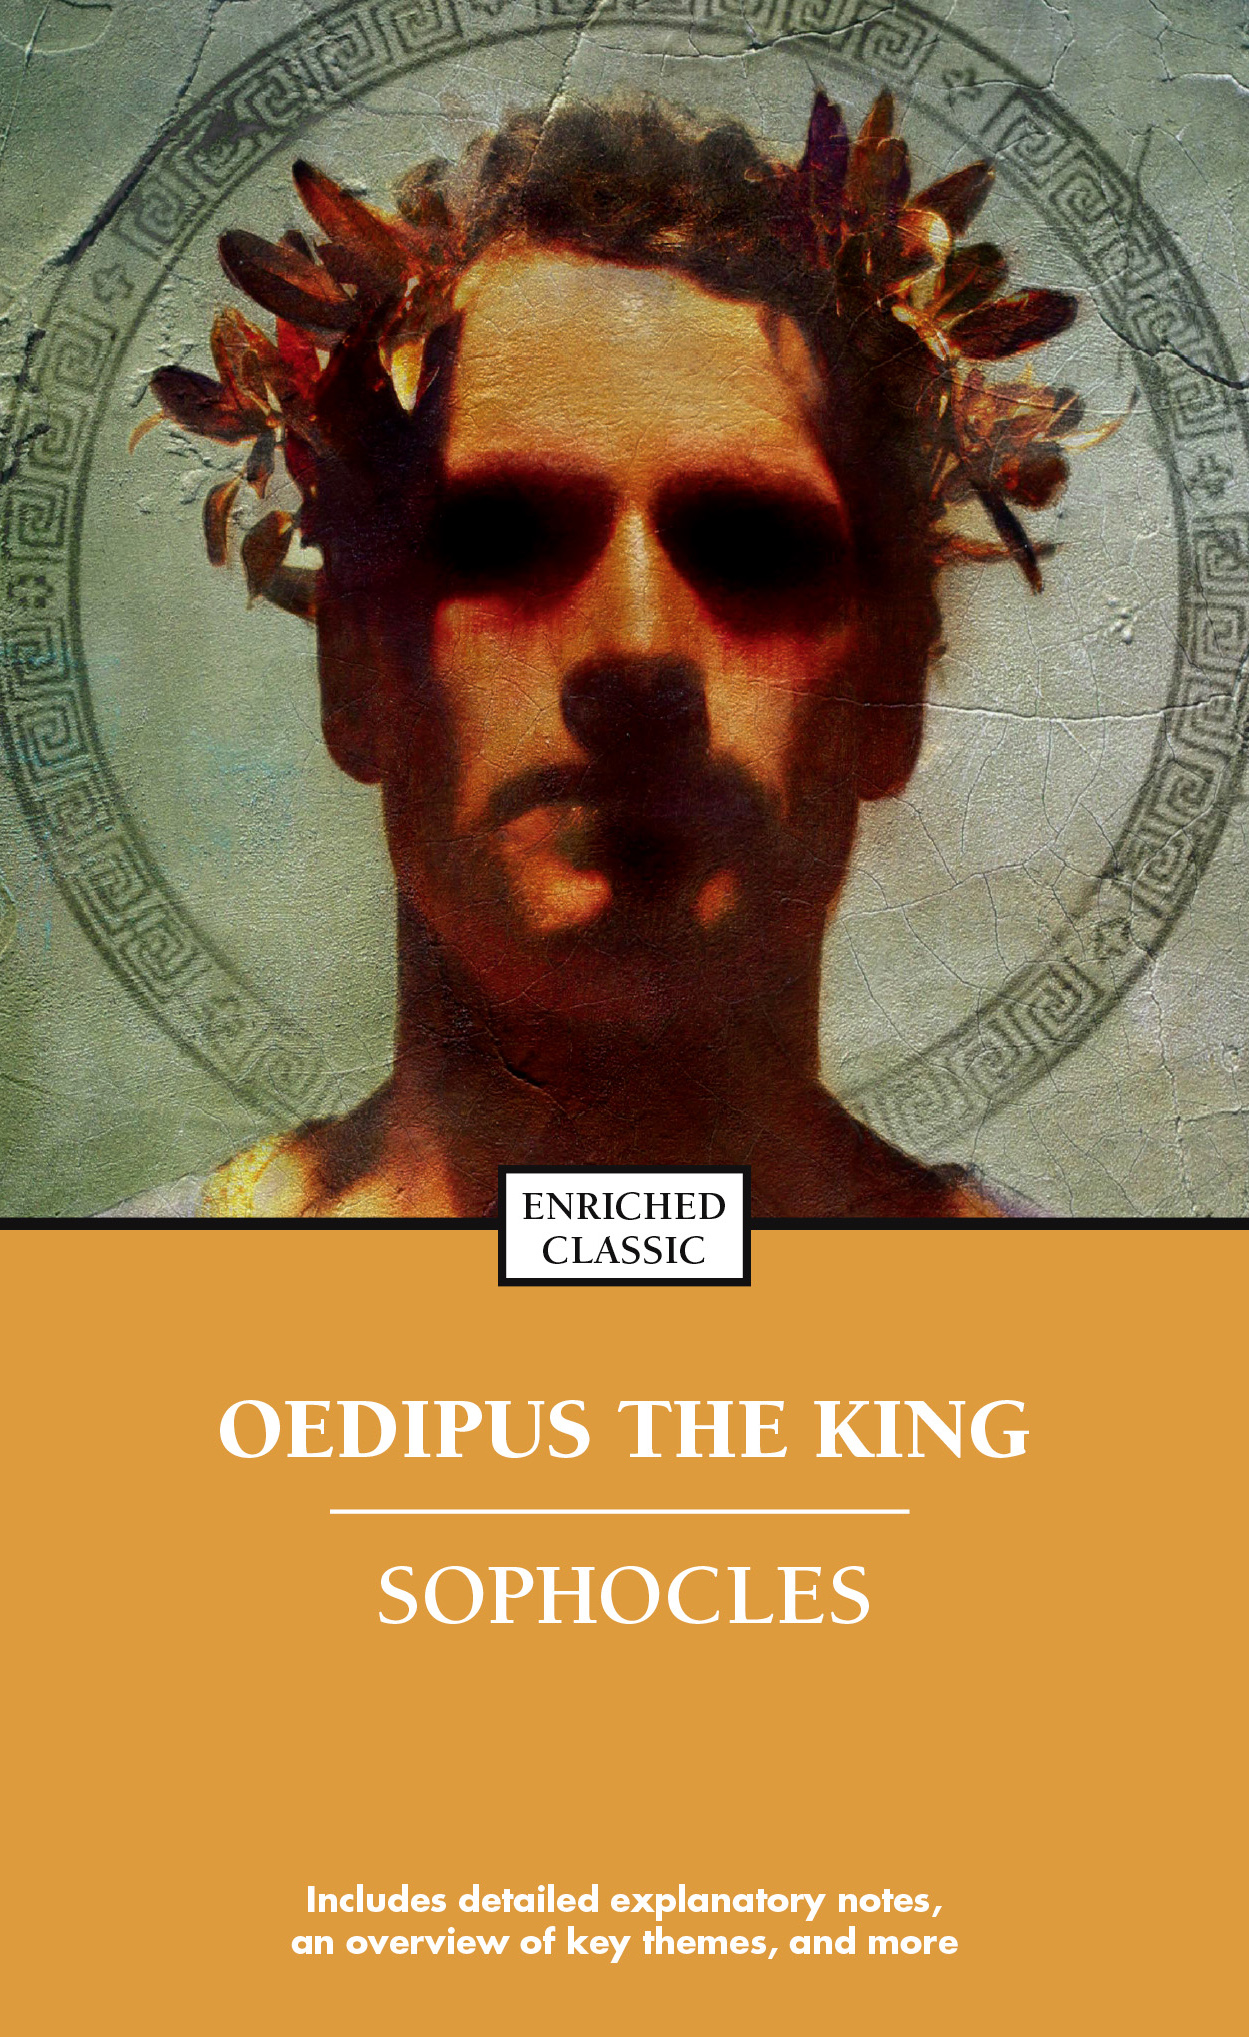 oedipus the king sophocles Please note that sophocles' oedipus the king may be listed as oedipus rex or  oedipus tyrannus, but it is a different play than oedipus at.